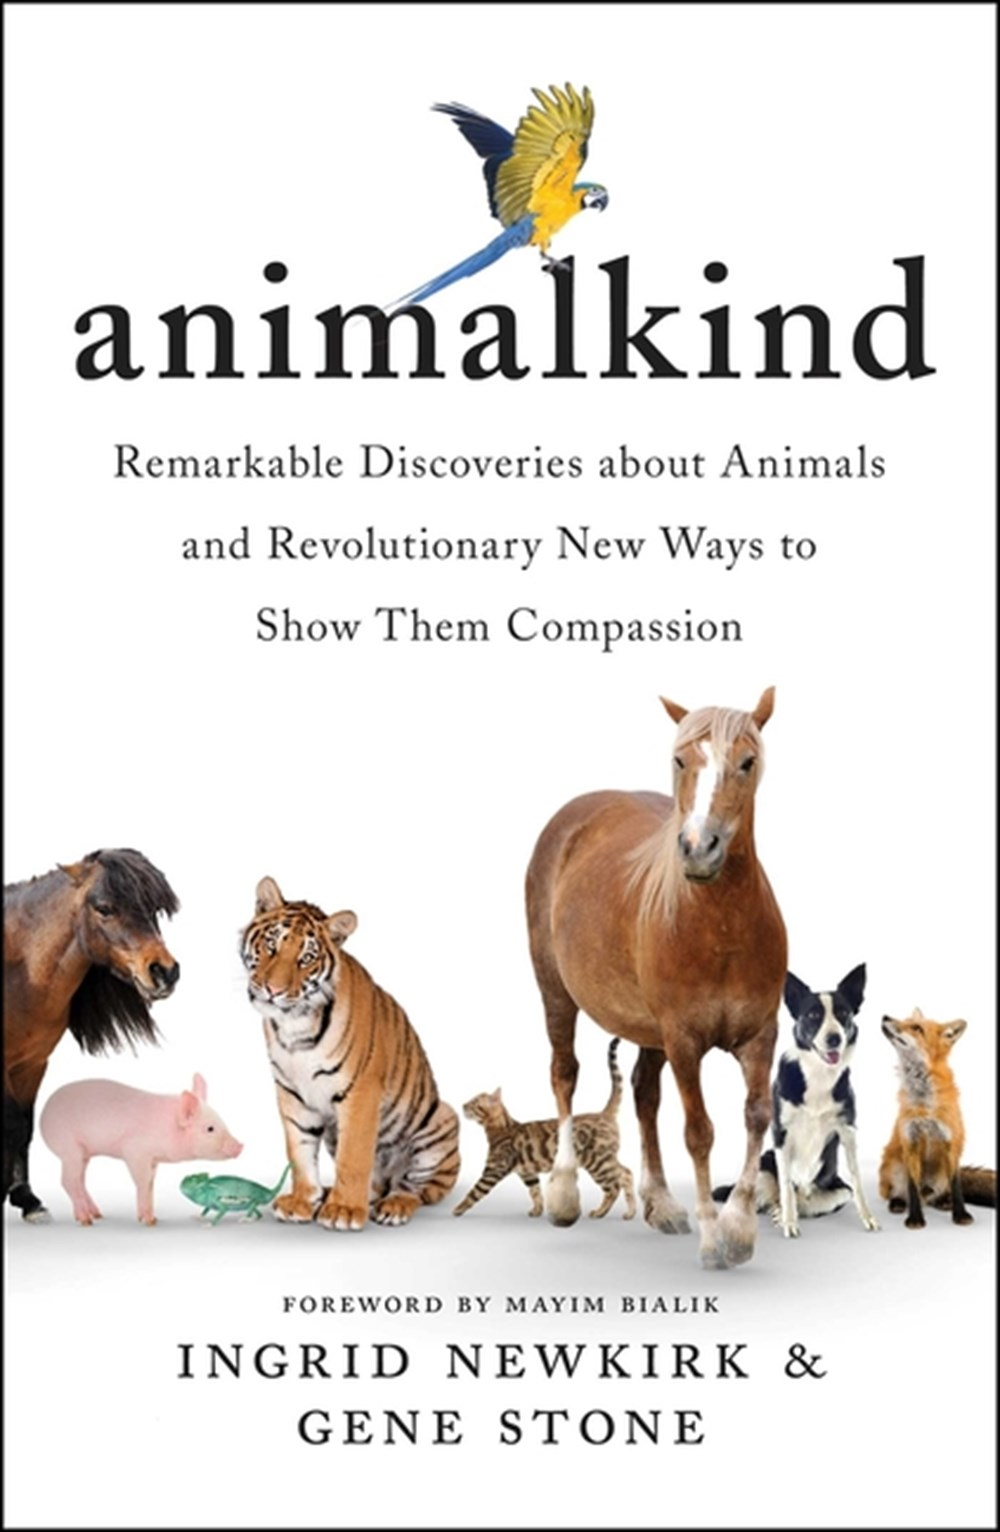 Animalkind Remarkable Discoveries about Animals and Revolutionary New Ways to Show Them Compassion